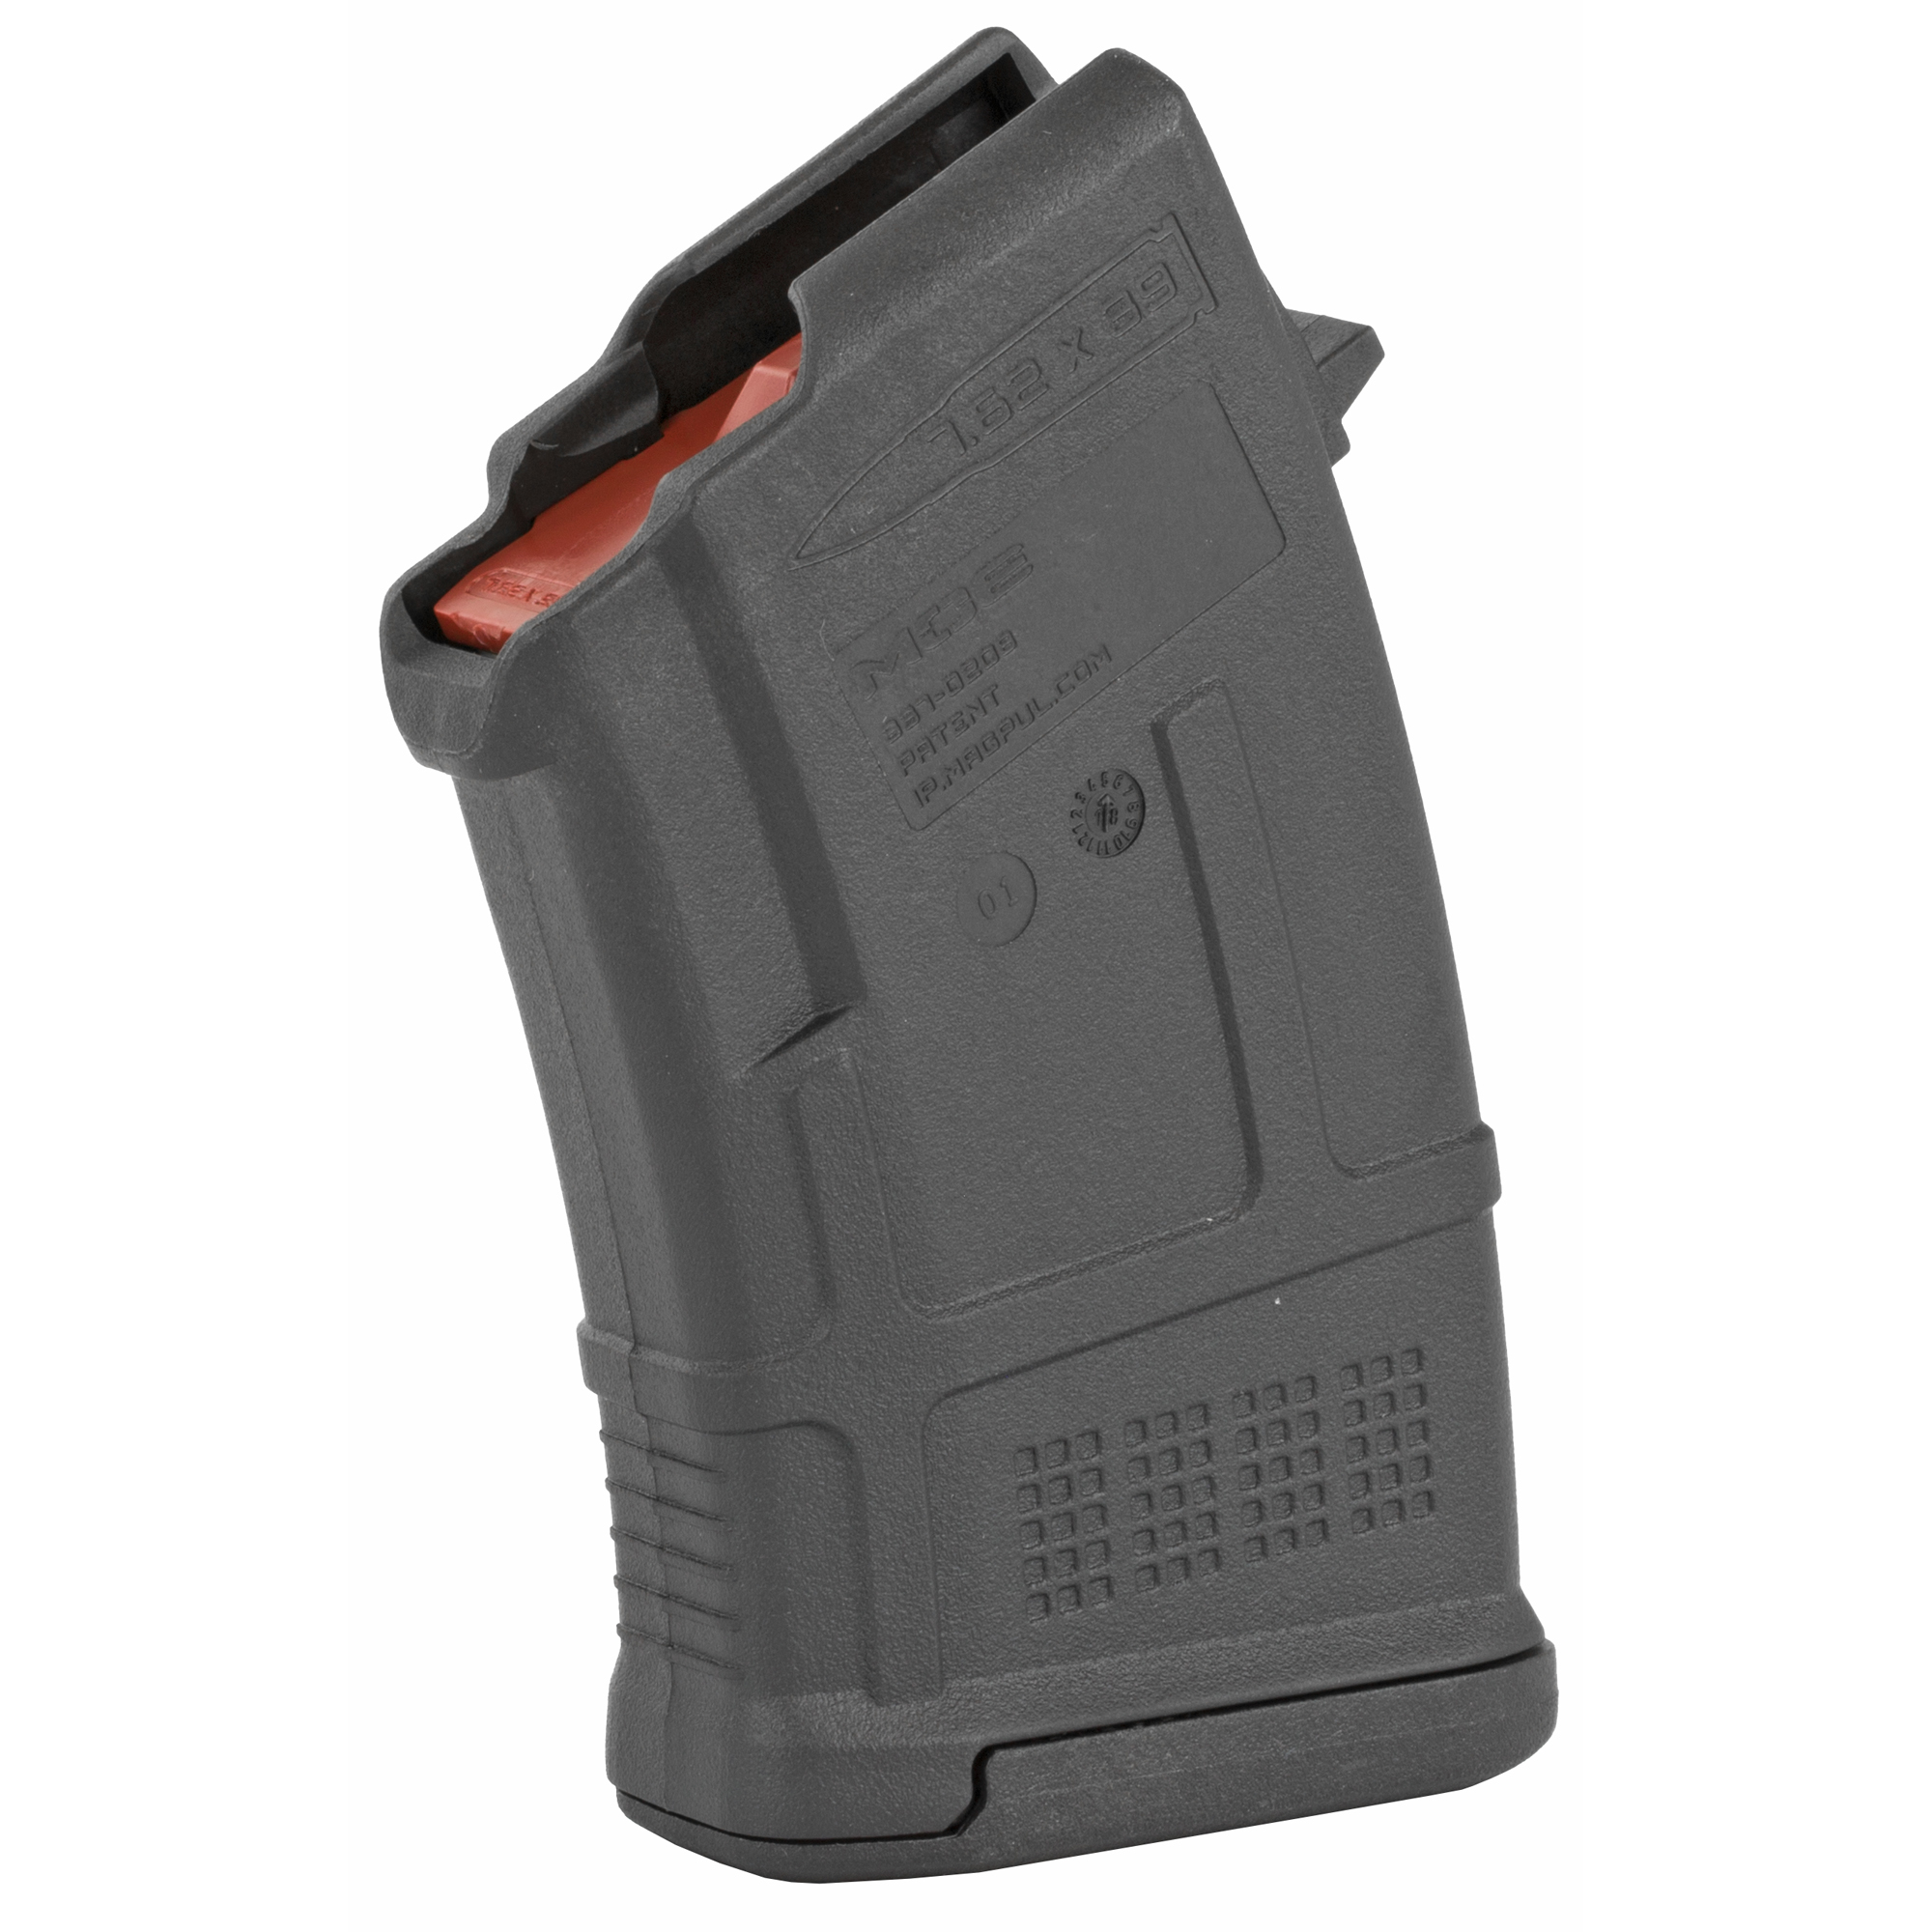 """The PMAG 10 AK/AKM MOE is an inexpensive"""" lightweight"""" high reliability 10-round polymer magazine designed for Kalashnikov pattern rifles in 7.62x39mm (AK-47"""" AKM"""" AKS"""" SIG556R"""" and others.) It features a removable floorplate"""" constant curve geometry"""" and a high-reliability/low-friction follower for the affordable performance you expect from a MOE PMAG. Made in U.S.A. Magazine counts as three US compliance parts for 922(r)."""